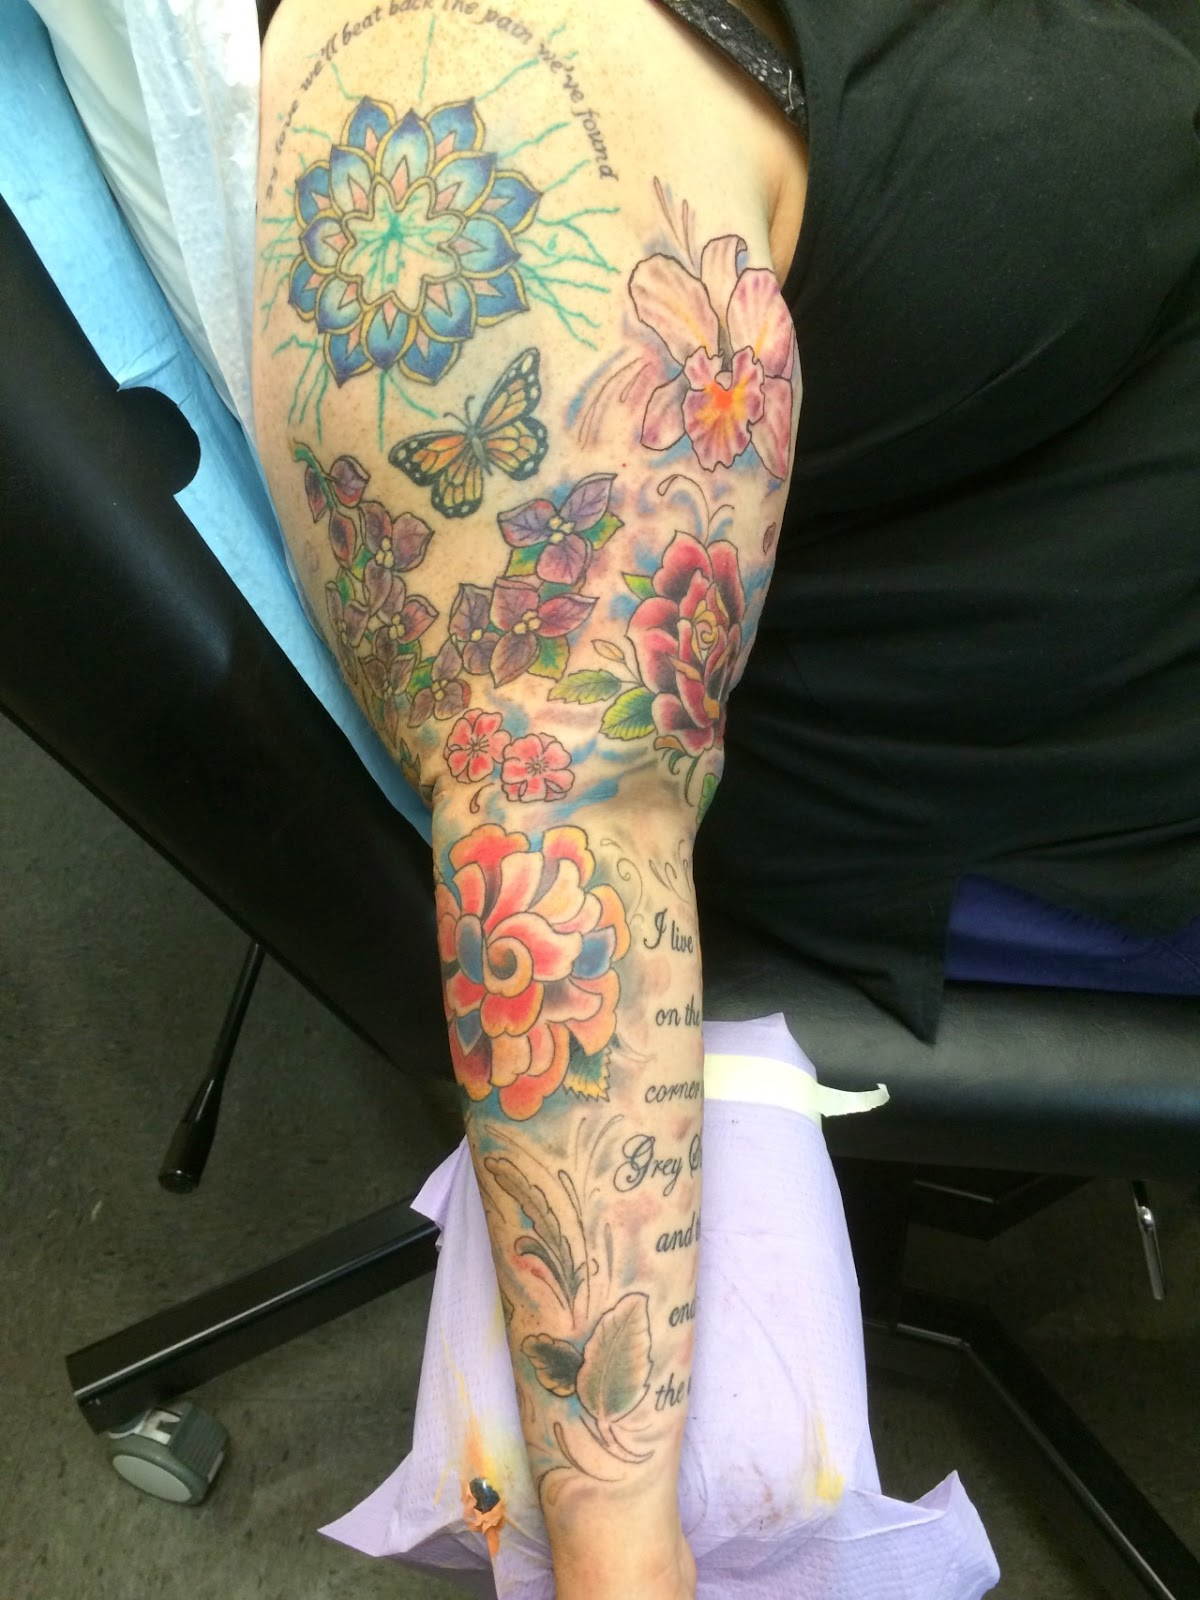 "Photograph: A tattooed arm. At top is a lotus with the words ""By love we'll beat back the pain we've found."" Below are a butterfly and a sprig of bougainvillea. To the right of that are an orchid and a red. Below these are two cherry blossoms, a cabbage rose, and some leaves and swirls of colour. To the side some words start to become visible."